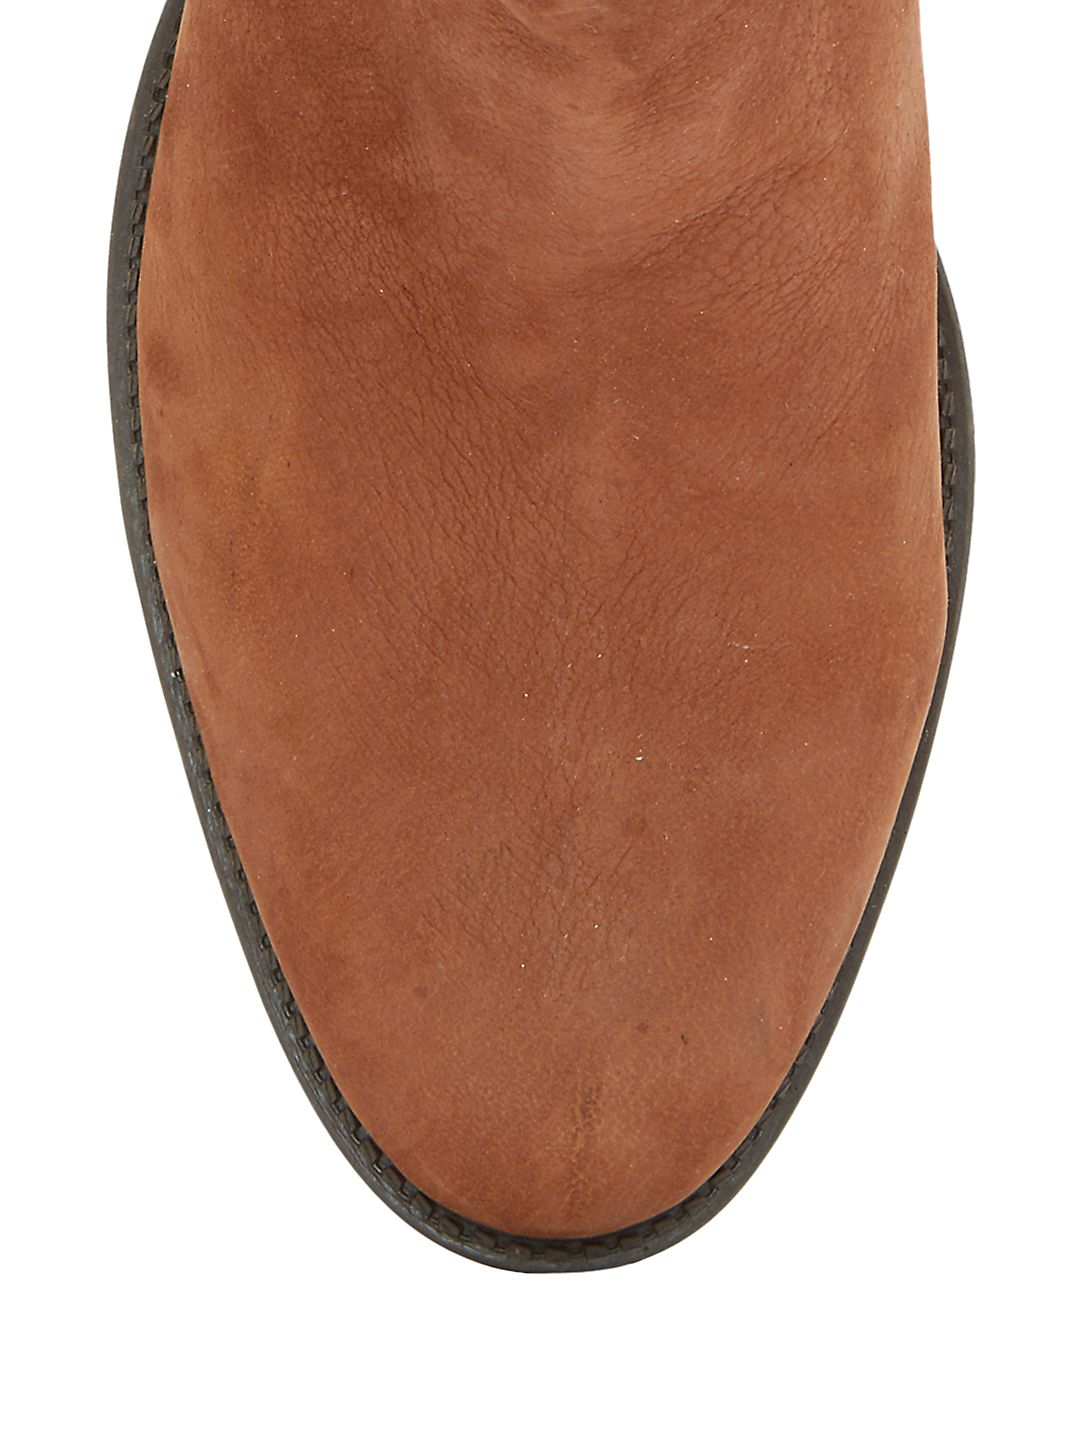 BHFO 0355 B,M Details about  /Me Too Womens Shane 8 Brown Leather Chelsea Boots Shoes 9 Medium